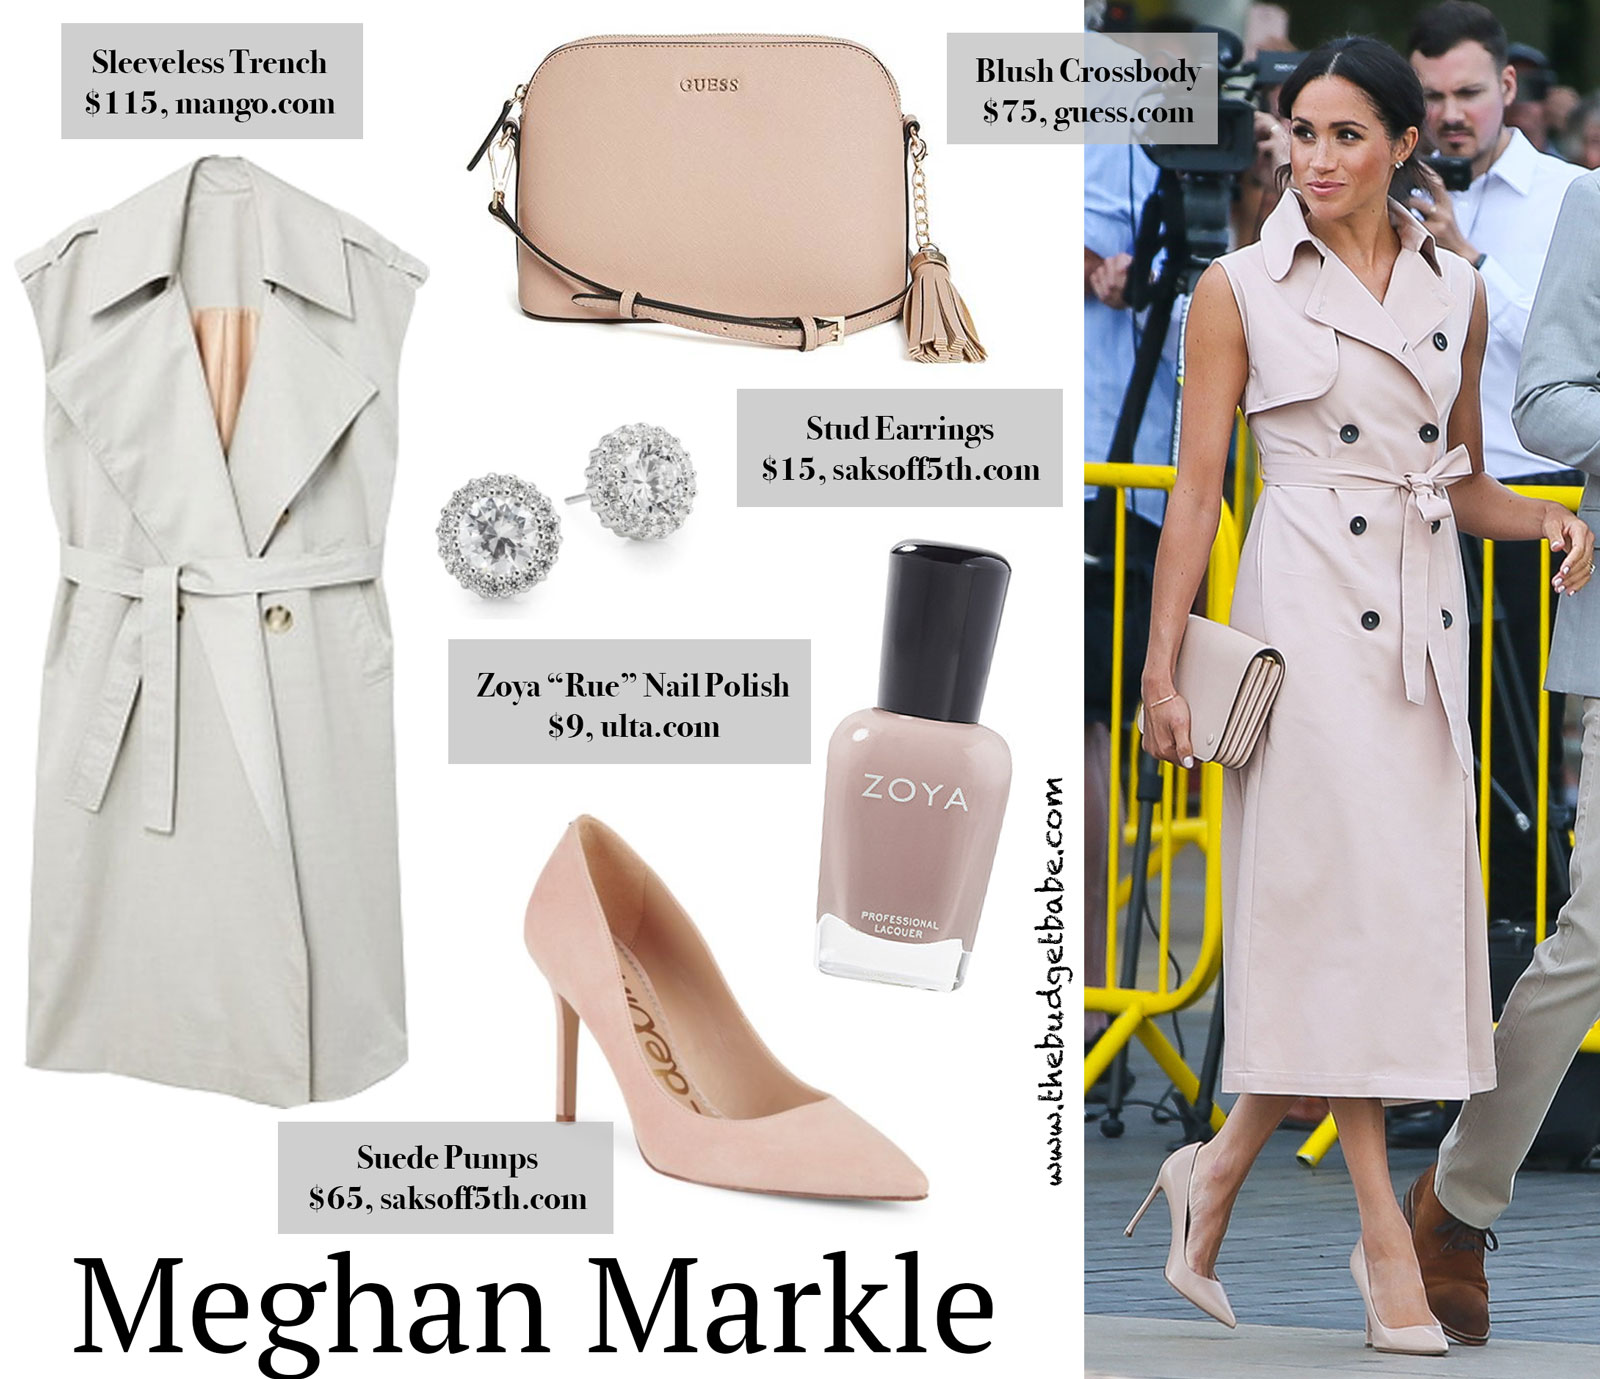 Meghan Markle's Sleeveless Trench Dress Look for Less